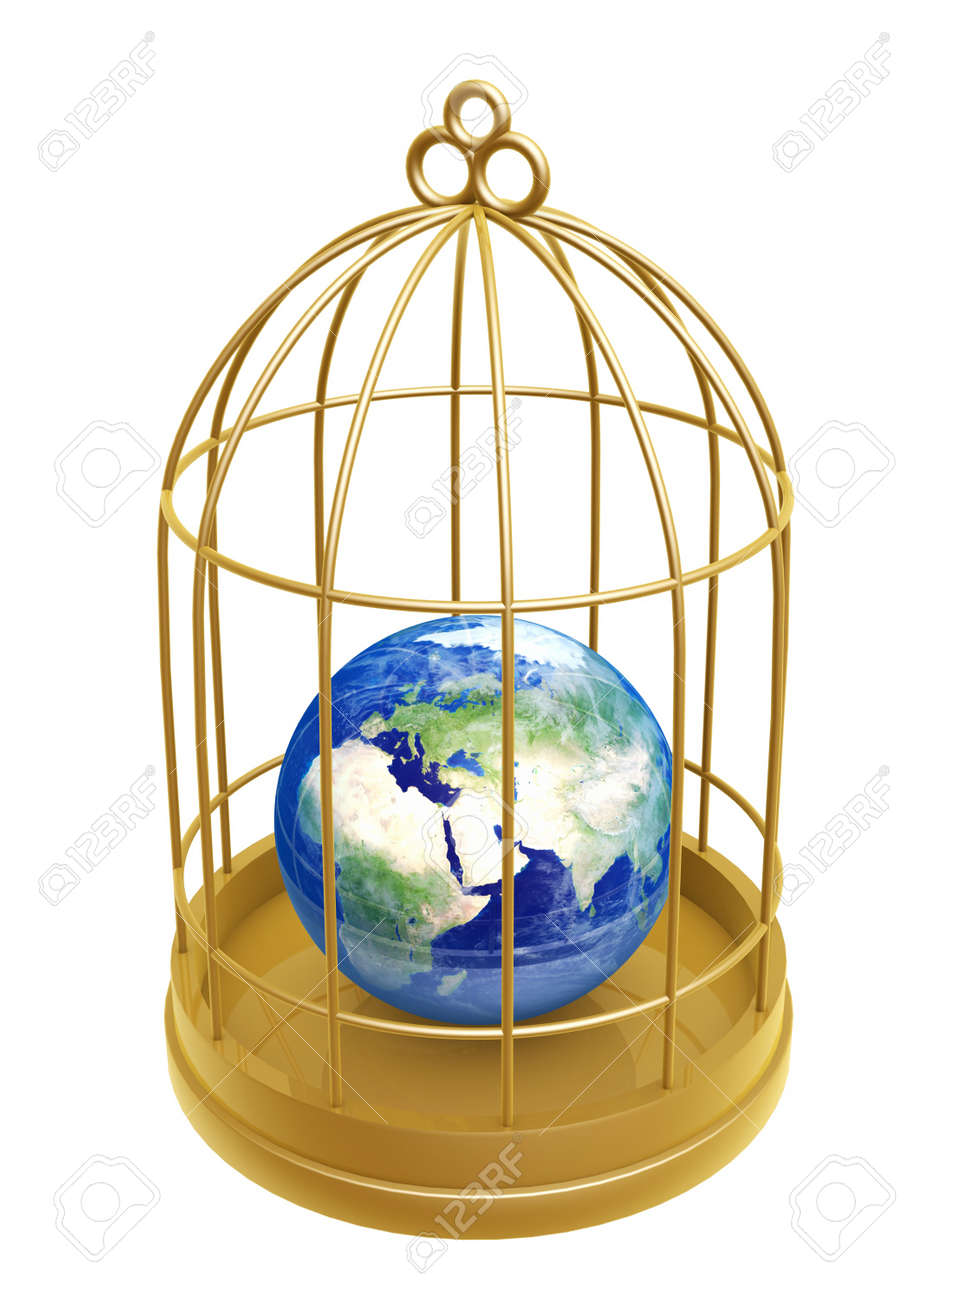 golden birdcage and earth isolated on white background Stock Photo - 16961262